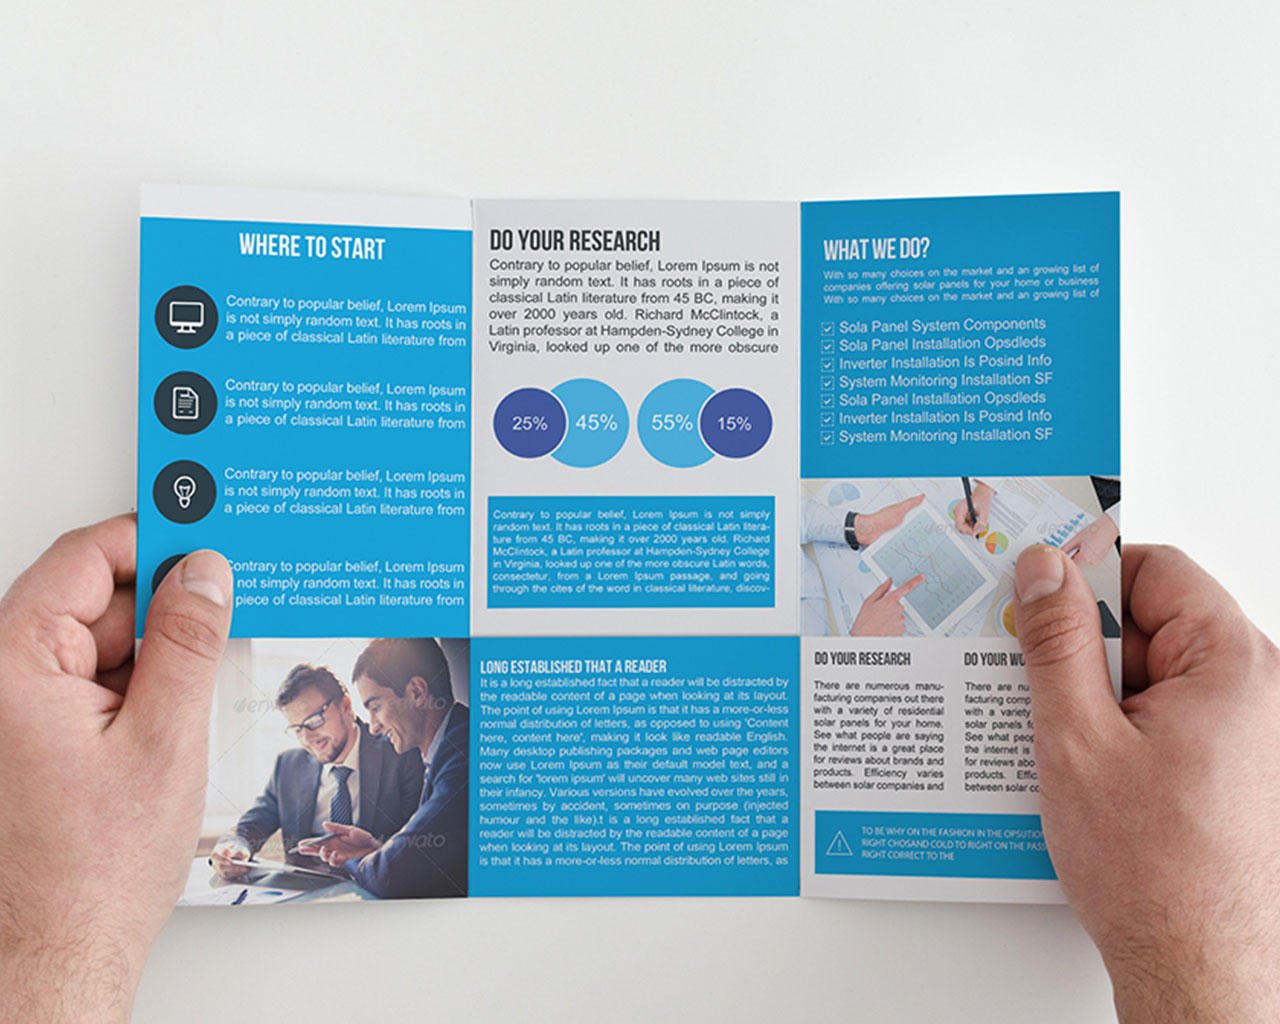 Awesome 1 Page Resume Format Free Download Small 100 Free Resume Builder And Download Regular 100 Free Resume Builder Online 1099 Contract Template Young 15 Year Old Resume Dark2 Circle Template Tri Fold Brochure Design Customization By CoralixThemes On Envato ..